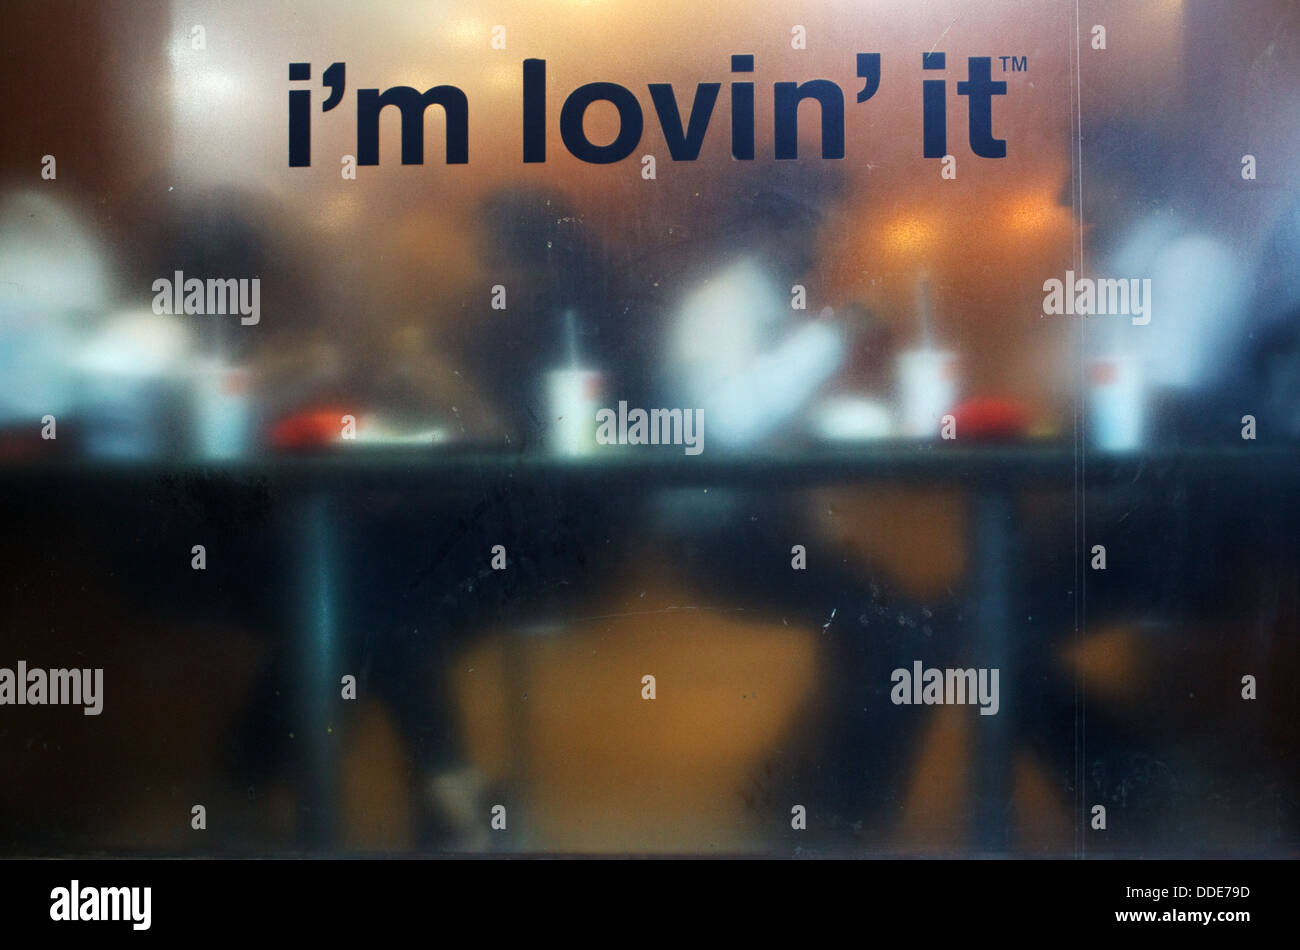 McDonald's fast food restaurant with 'I'm loving it' slogan on the window in Central Mumbai, India. - Stock Image